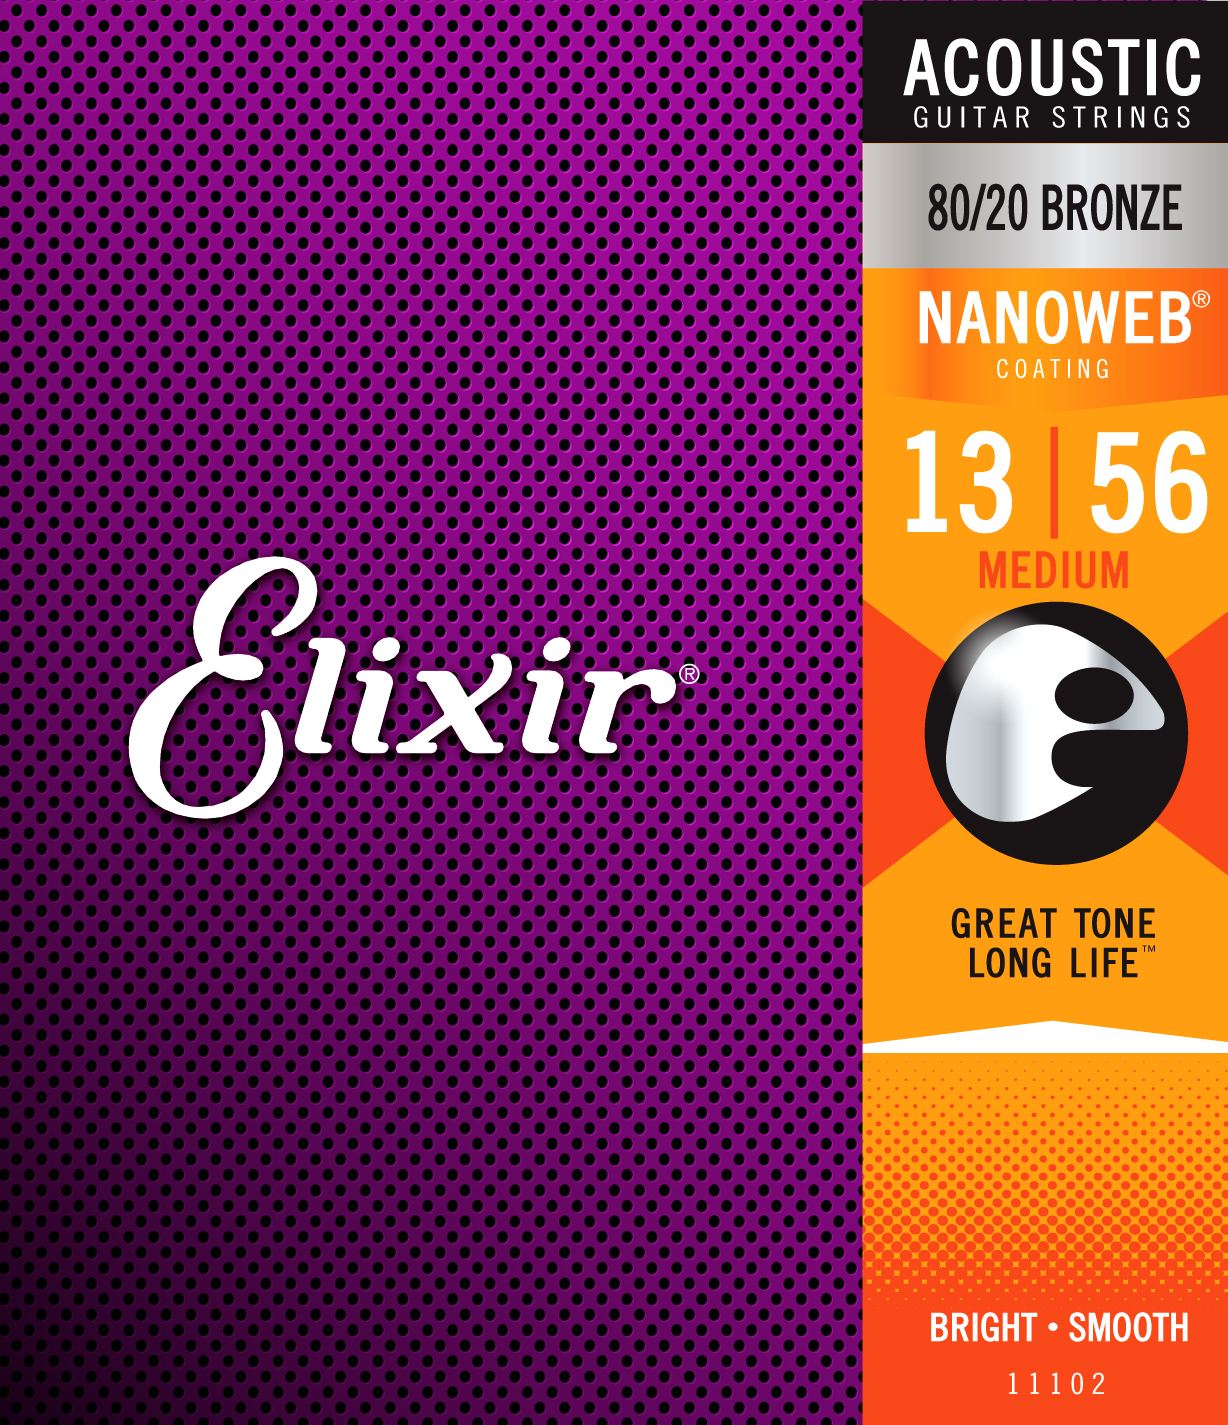 цена Elixir Original Strings 11102 80/20 Bronze Acoustic Guitar Strings with NANOWEB Coating, Medium (.013-.056) онлайн в 2017 году